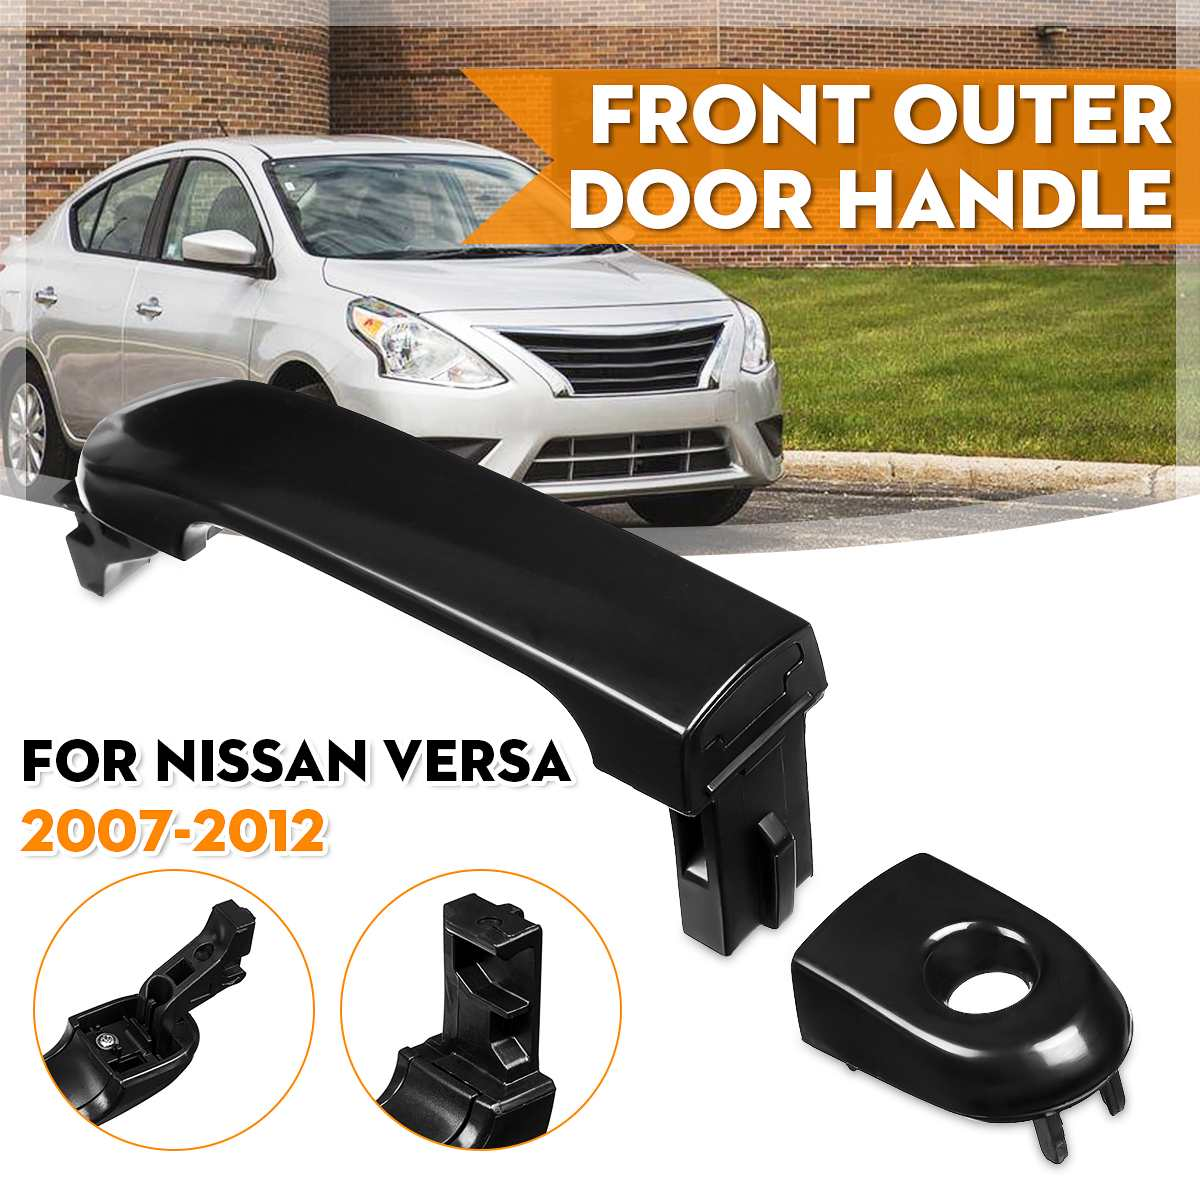 For Nissan Versa 2007-2012 Front Outside Exterior Outer Door Handle Left Driver